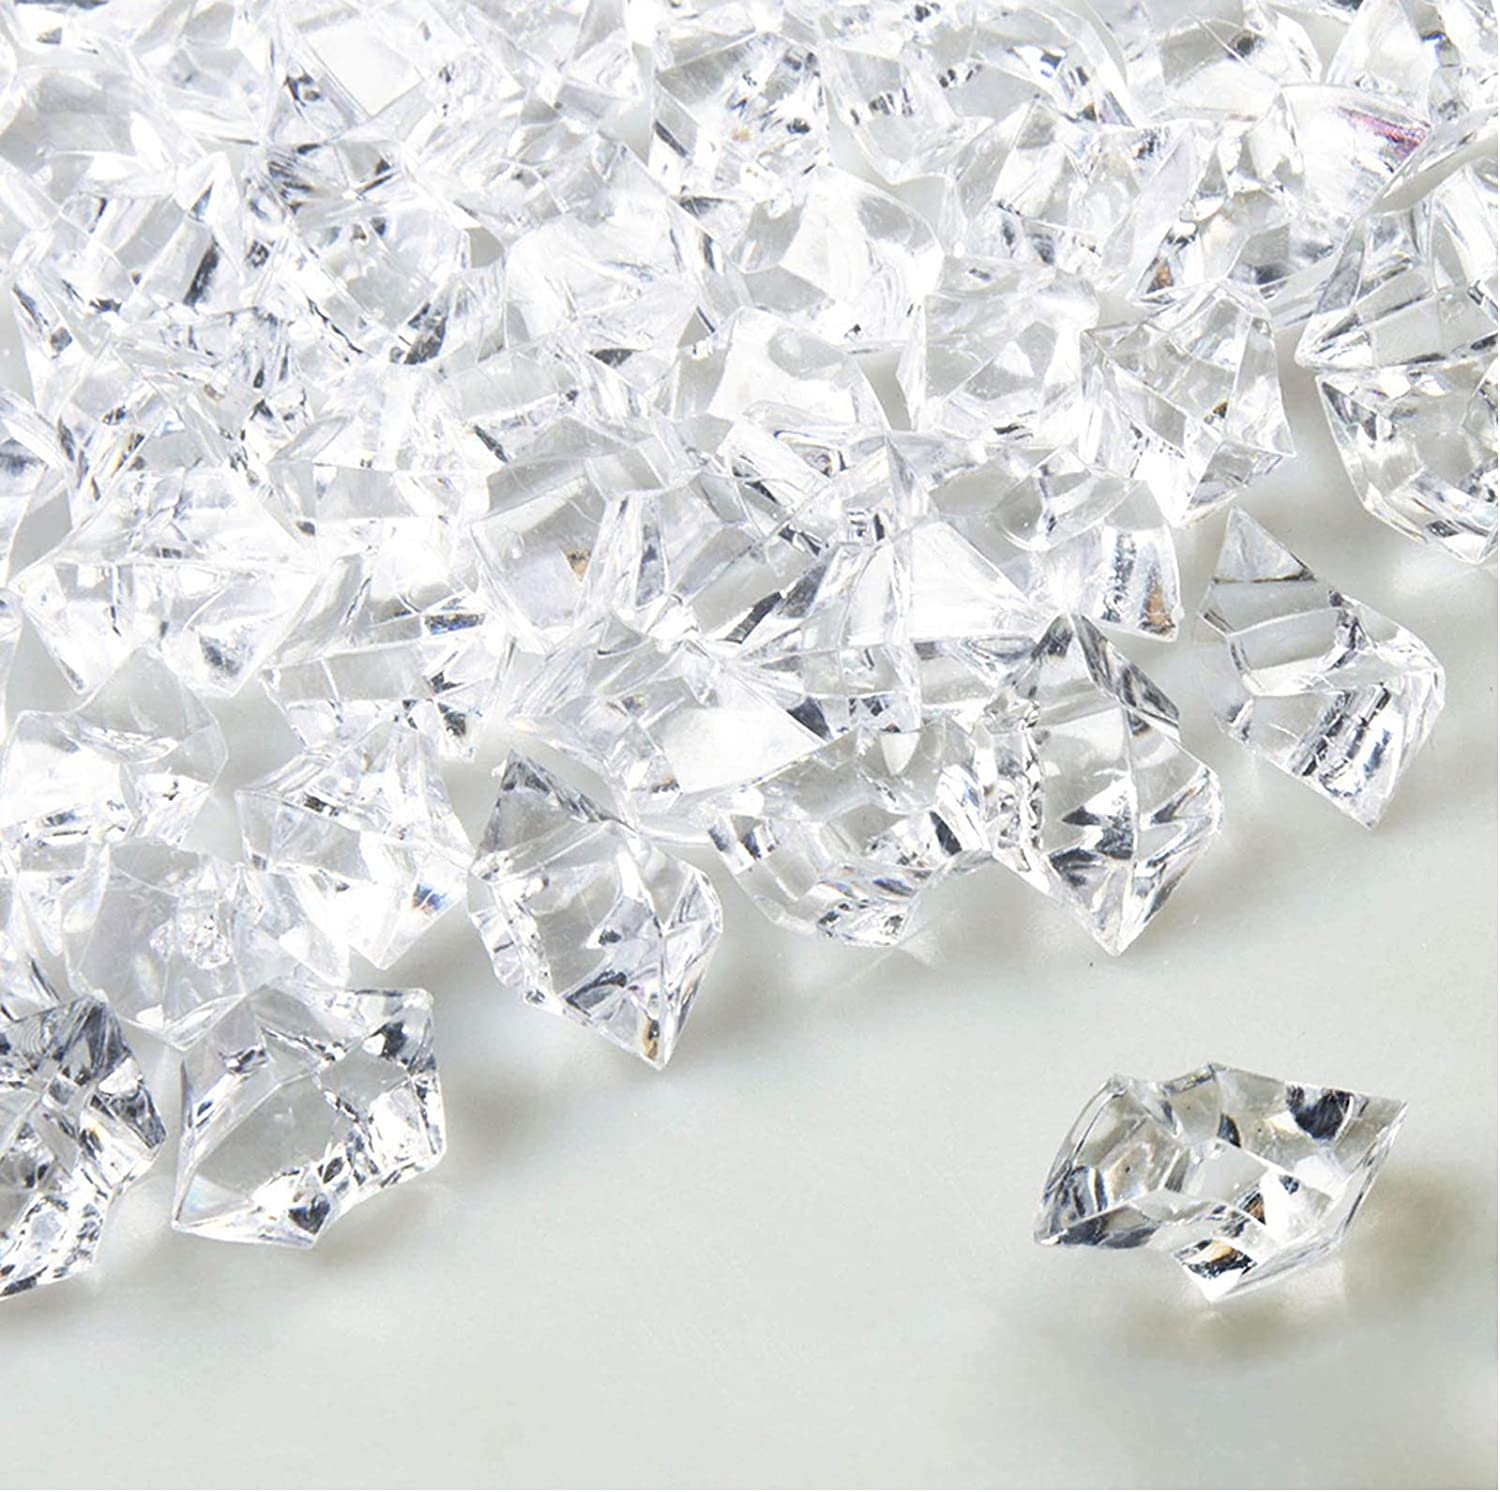 2Krmstr 100Pcs Fake Crystals Ice Rock, Clear Acrylic Gems, Fake Crushed Ice Cubes for Vase Filler Party Table Scatter, Wedding Arts Crafts Home Decoration